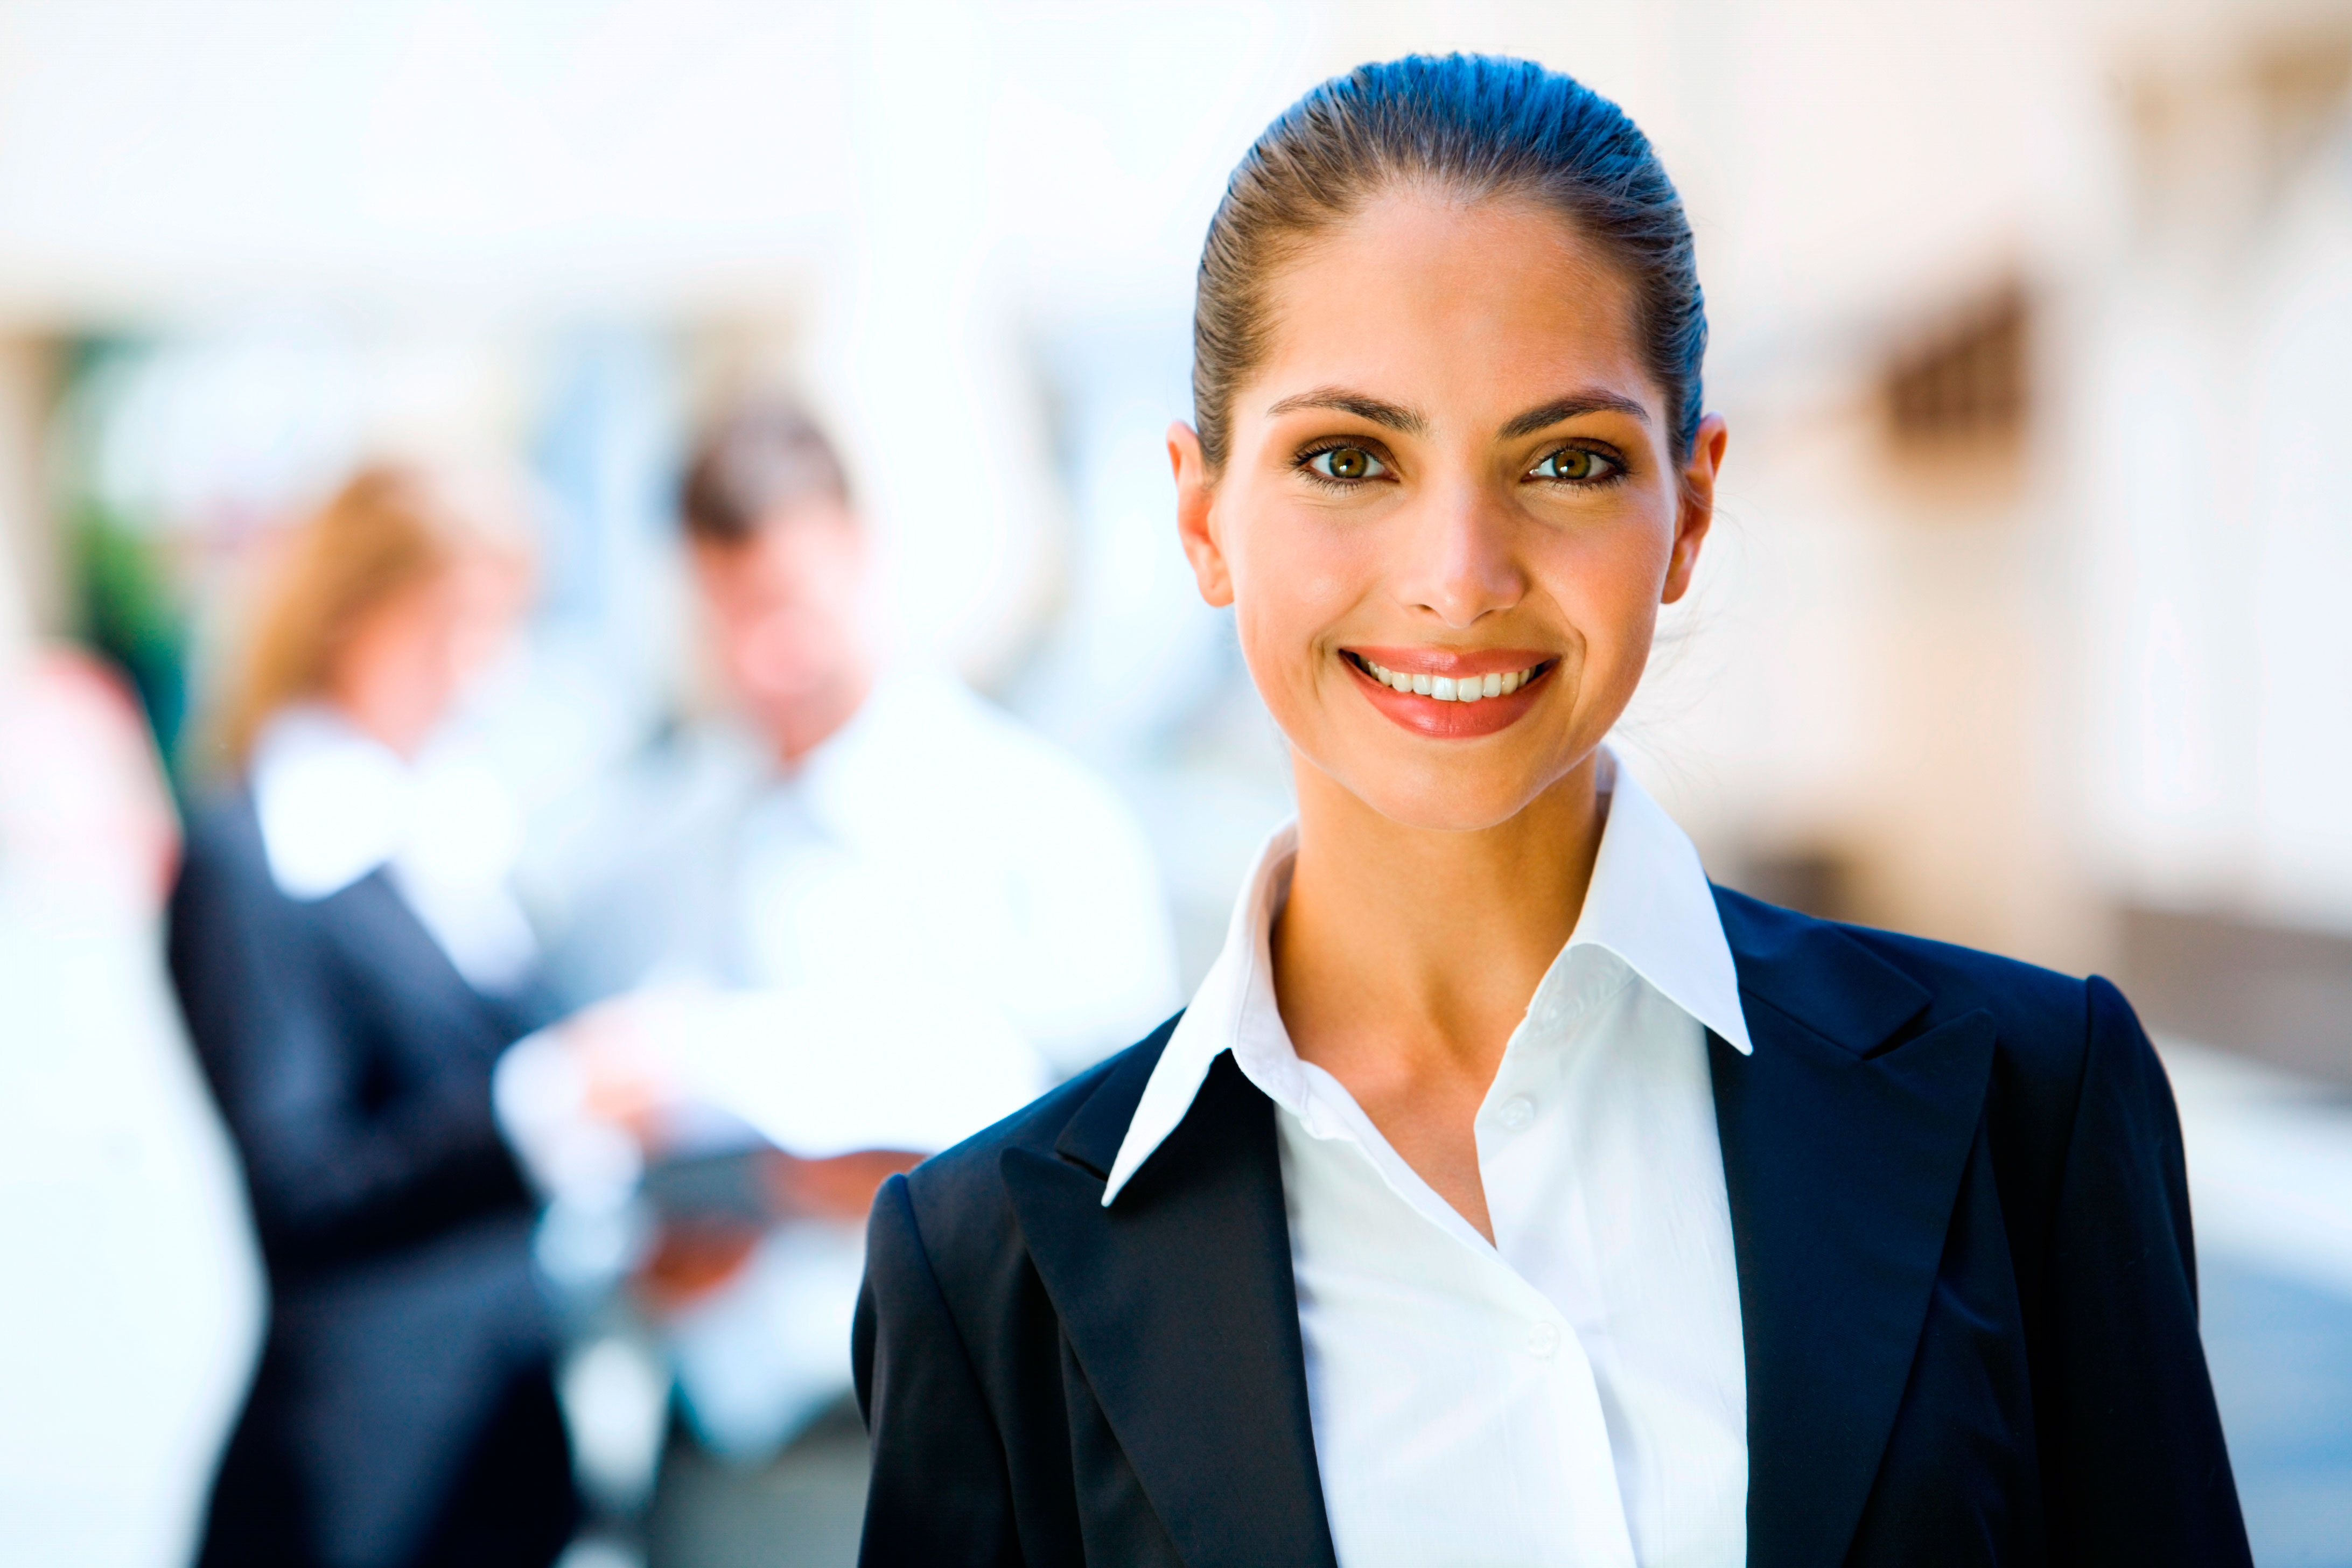 Portrait of a smiling business lady with a combed back hair